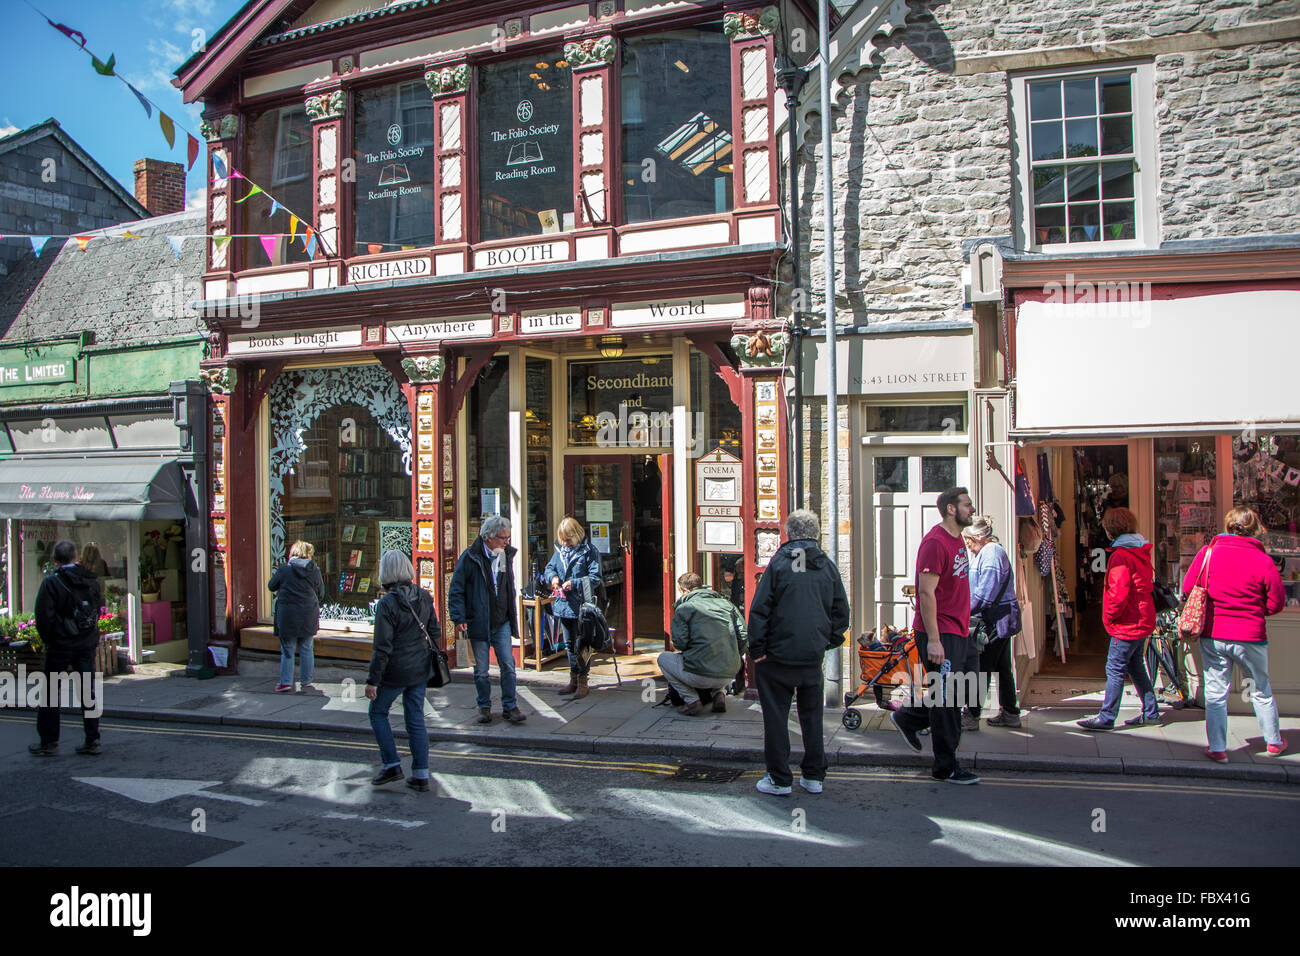 Famous Richard Booth bookshop in Hay-on-Wye, Wales - Stock Image